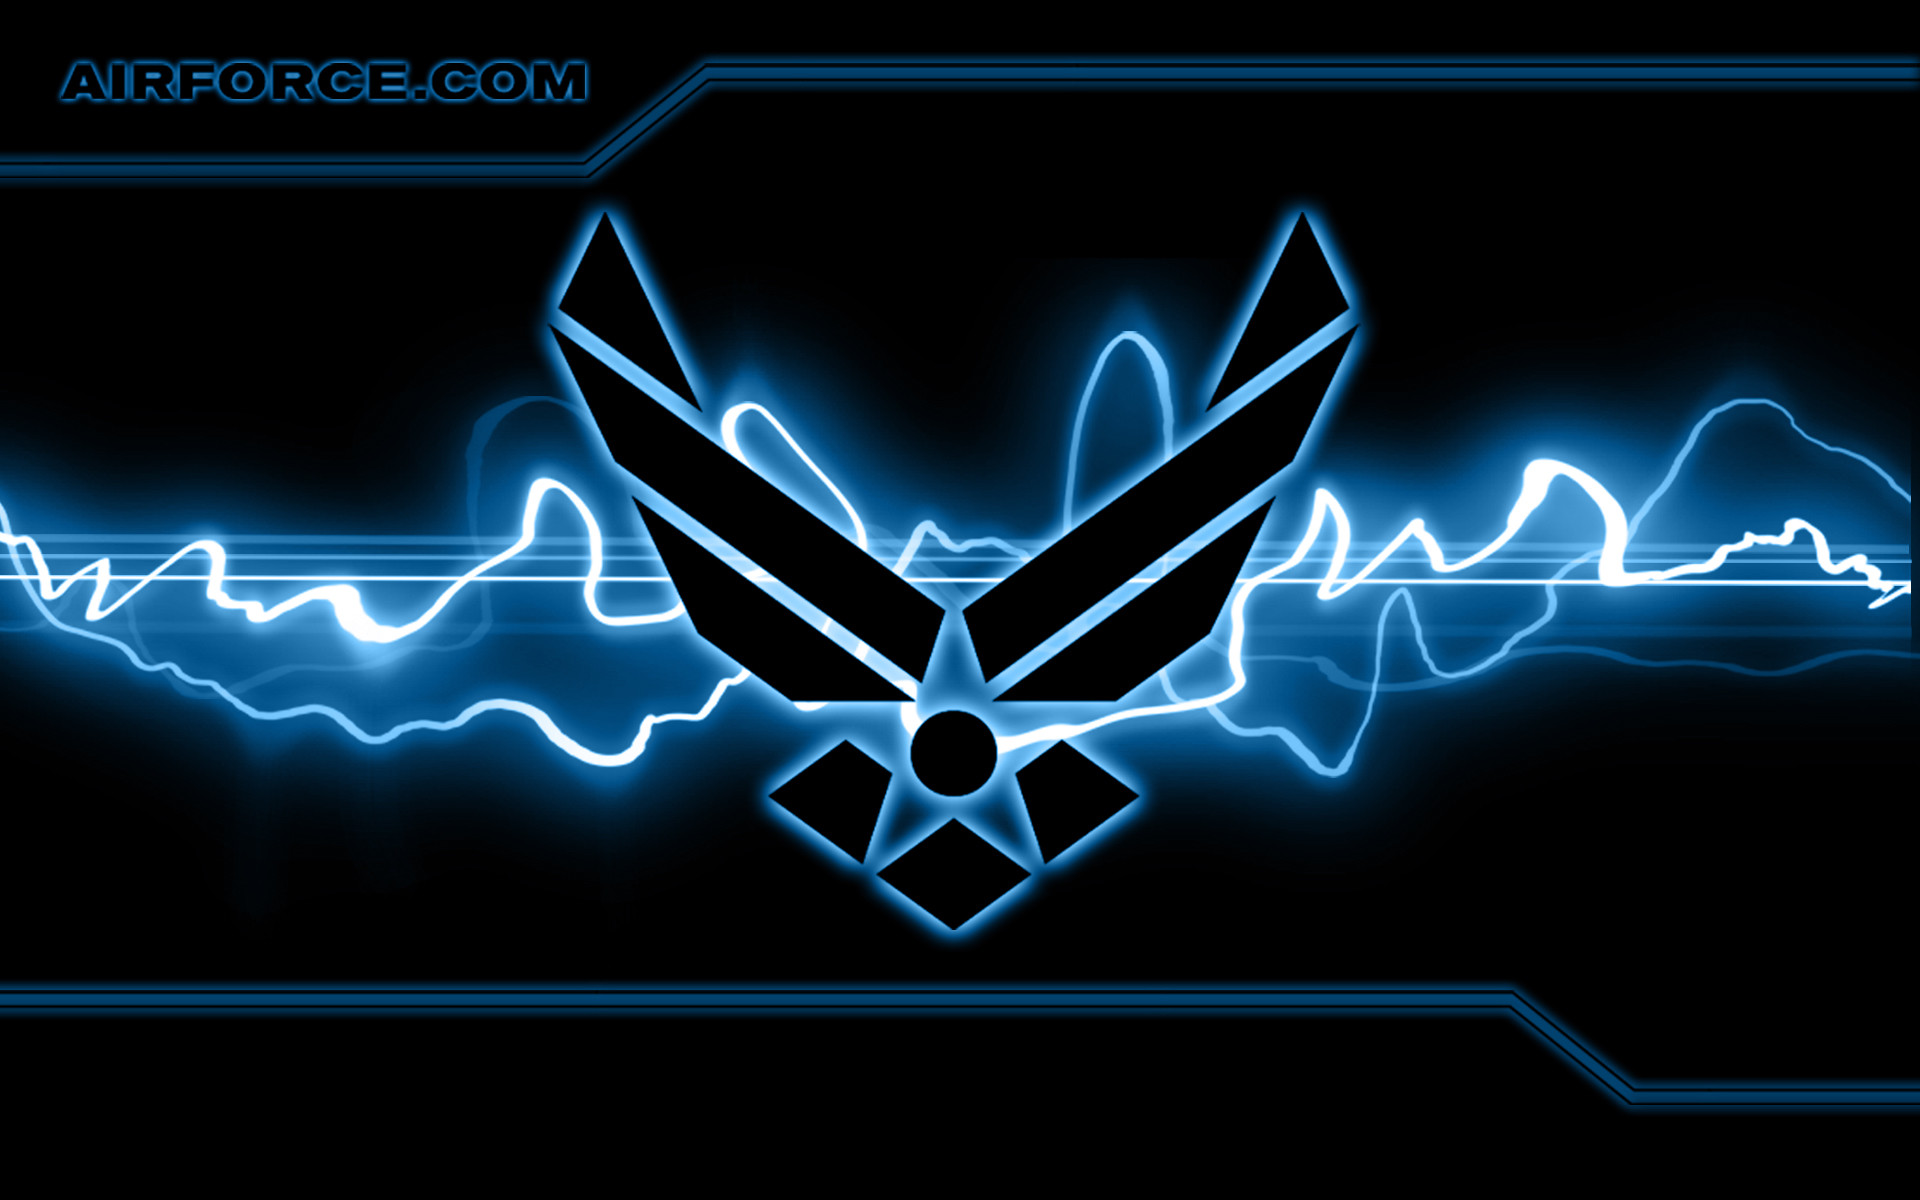 1920x1200 Air Force Emblem Wallpaper #170495 - Resolution  px